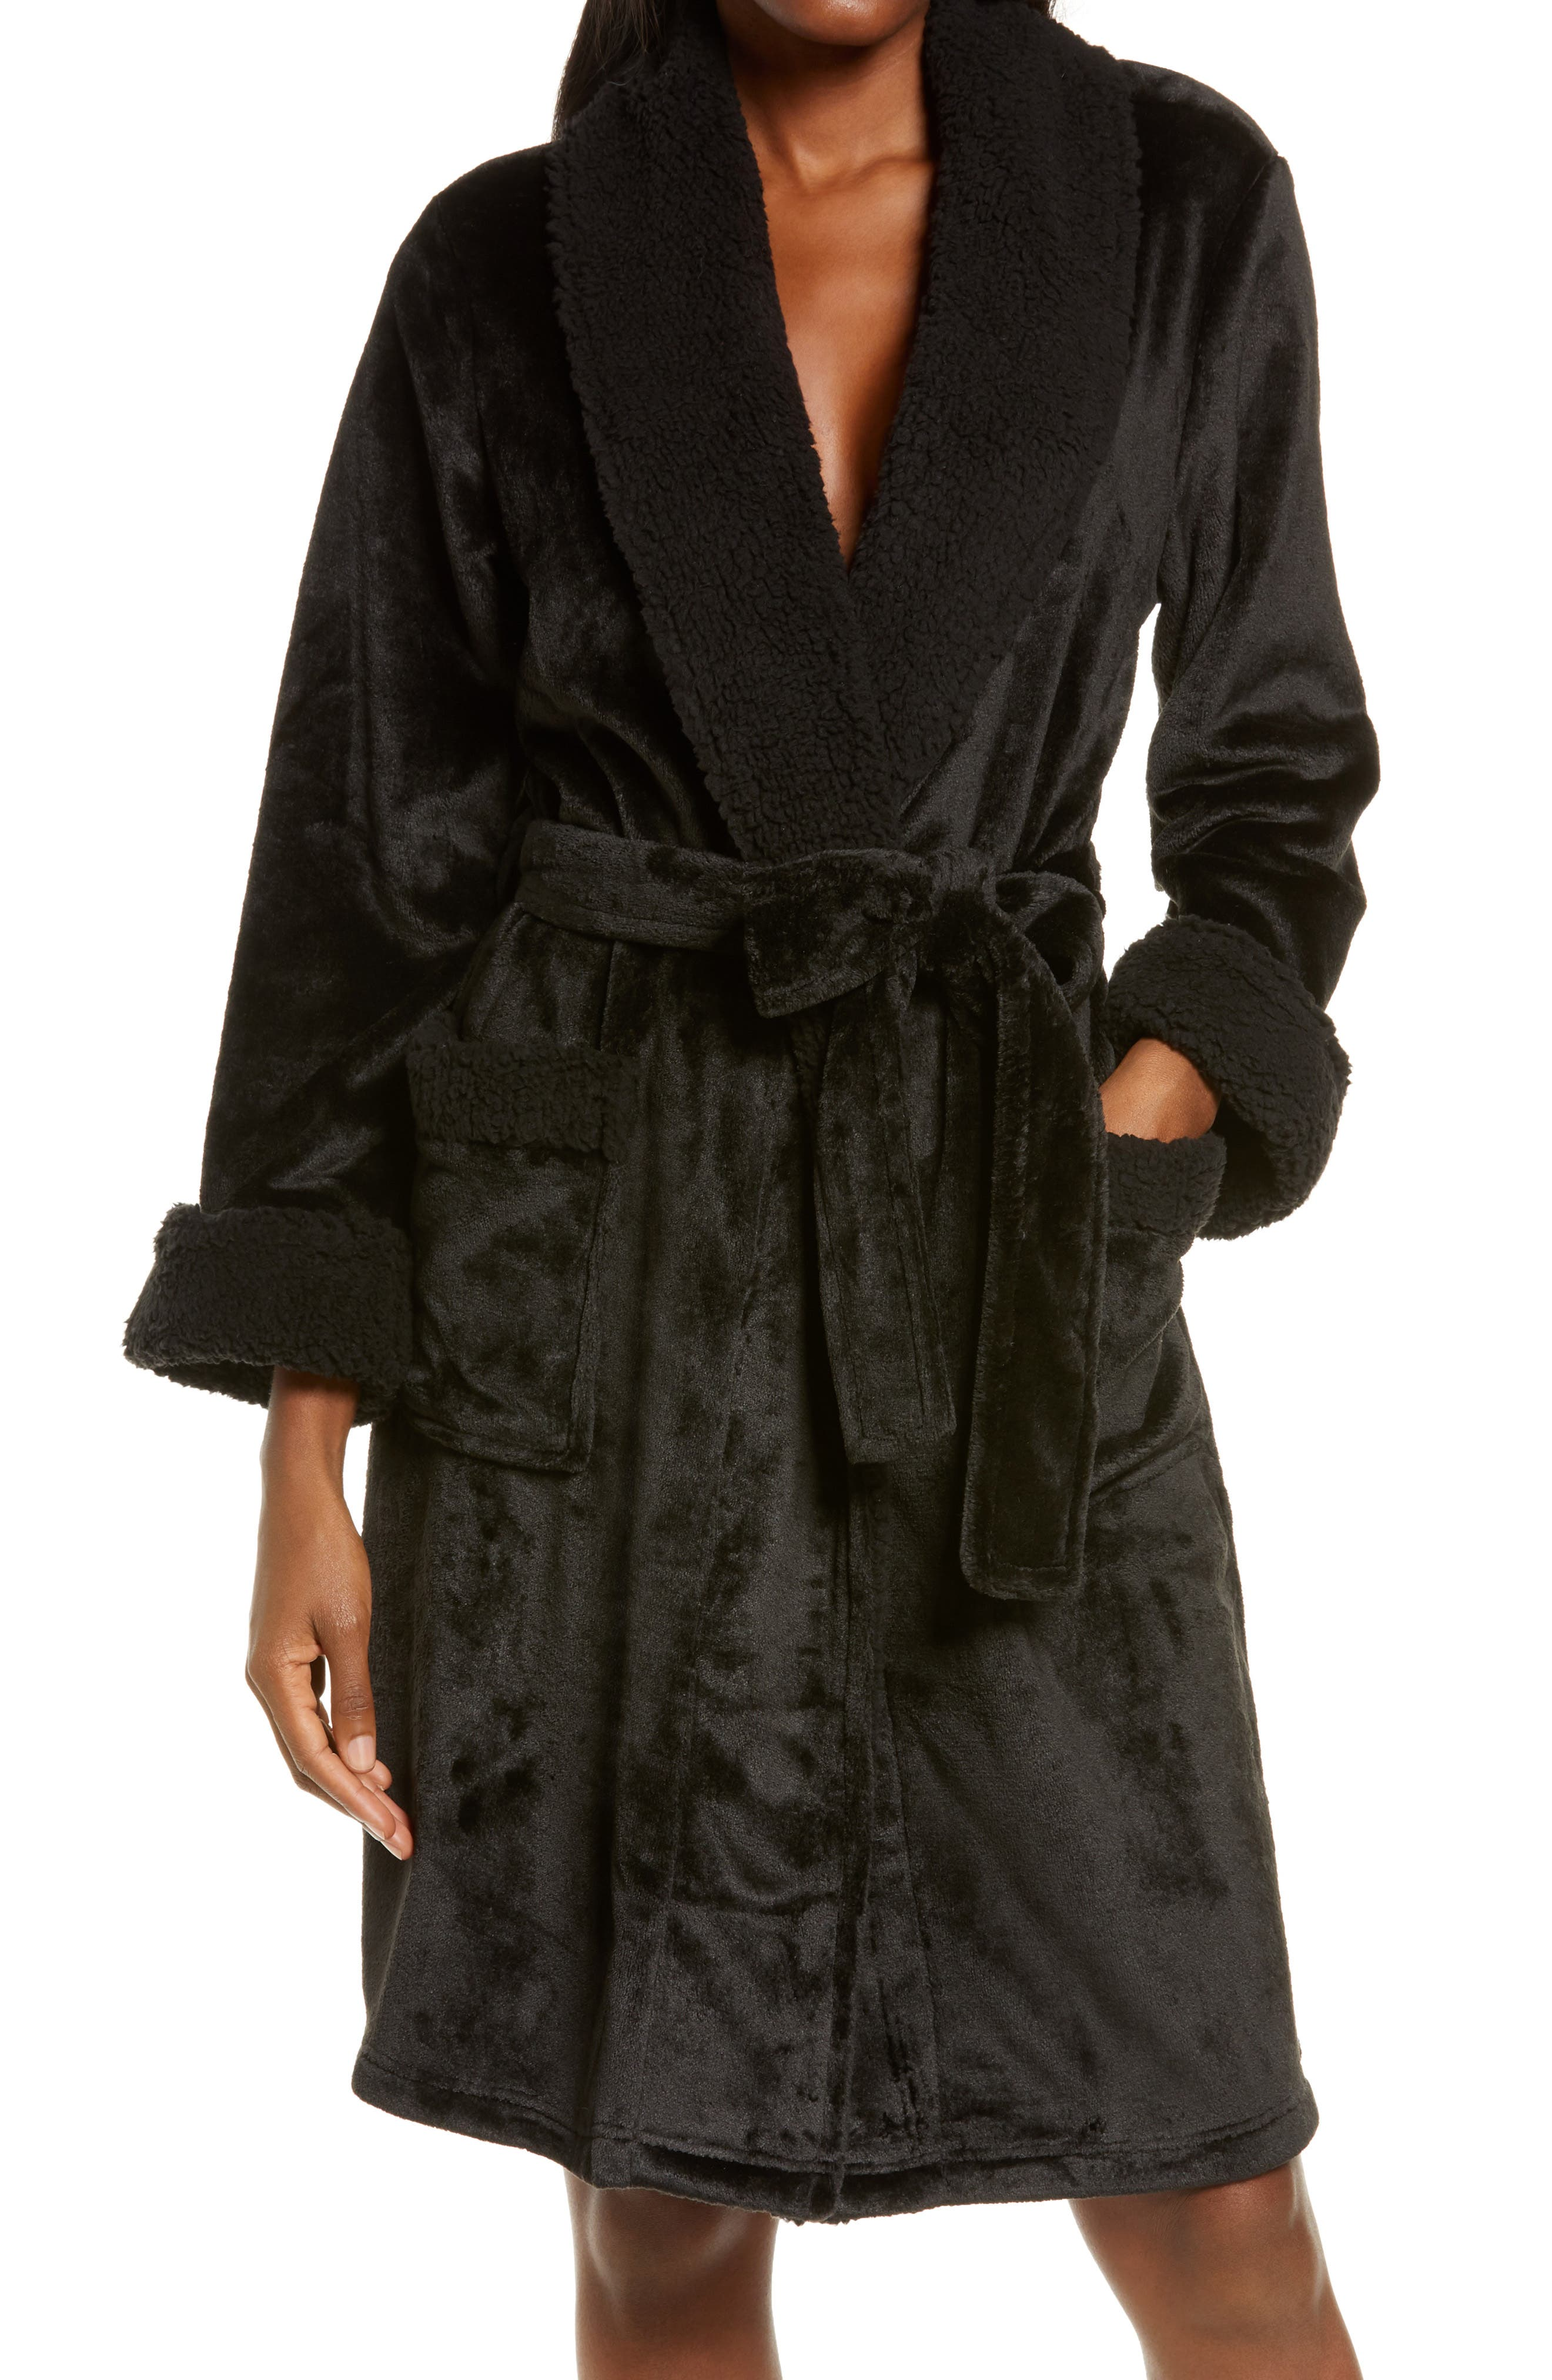 A shawl collar and hand-warming patch pockets style an undeniably plush robe finished with a tie belt at the waist. Style Name: Natori Plush Robe. Style Number: 6115155. Available in stores.